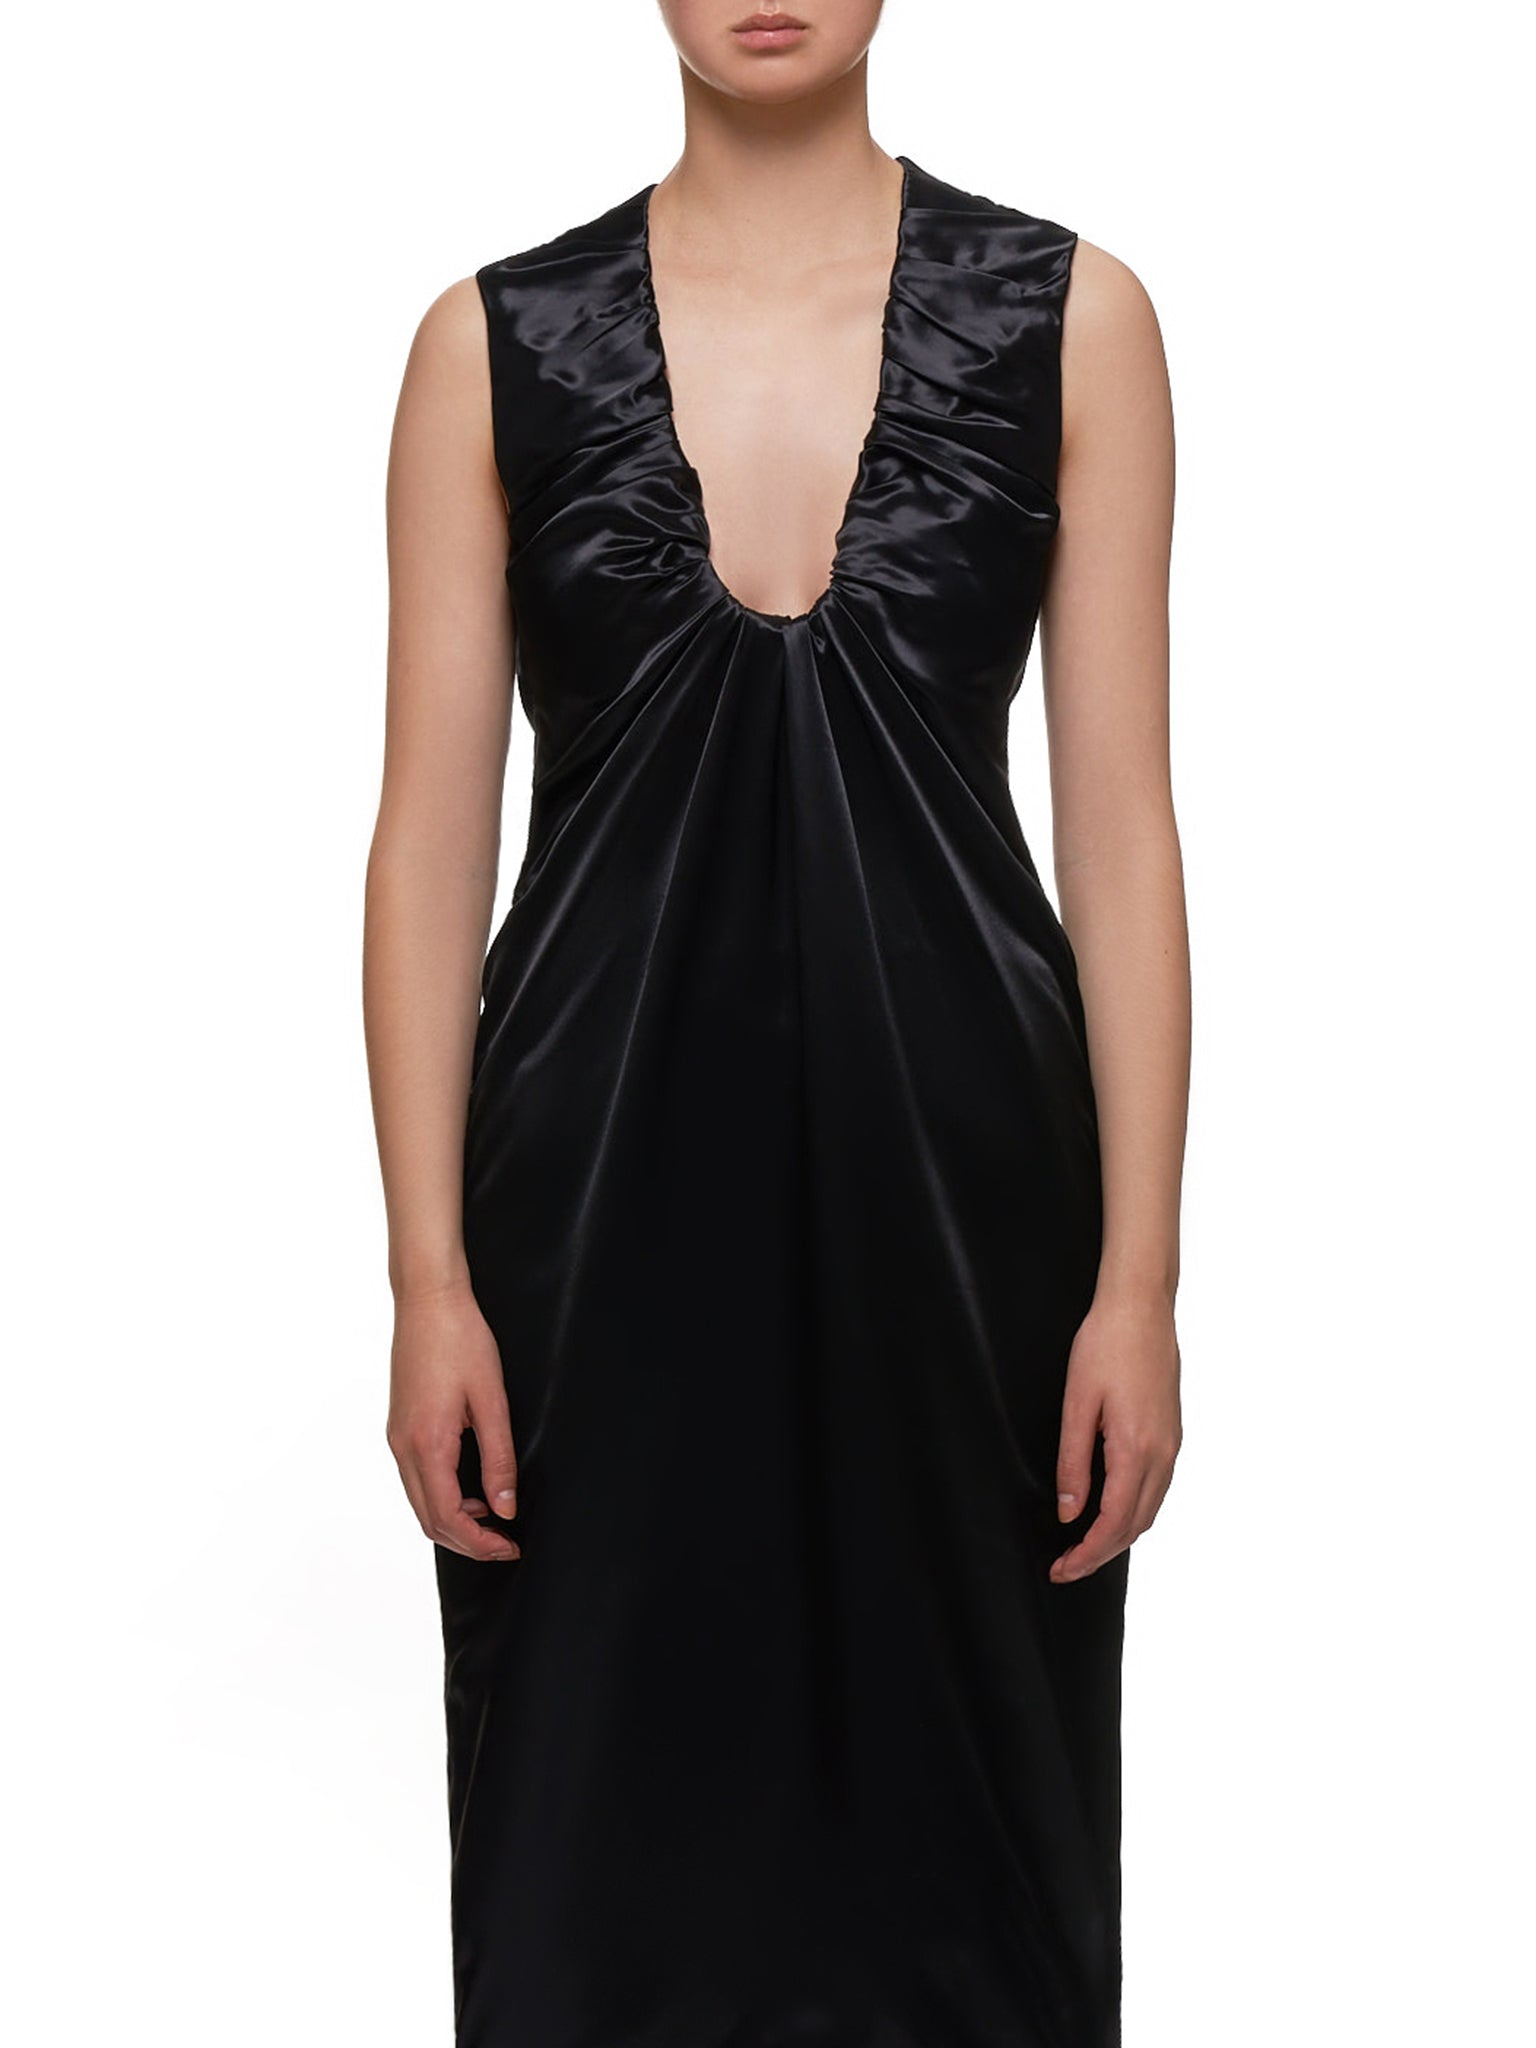 Bottega Veneta Dress - Hlorenzo Detail 1